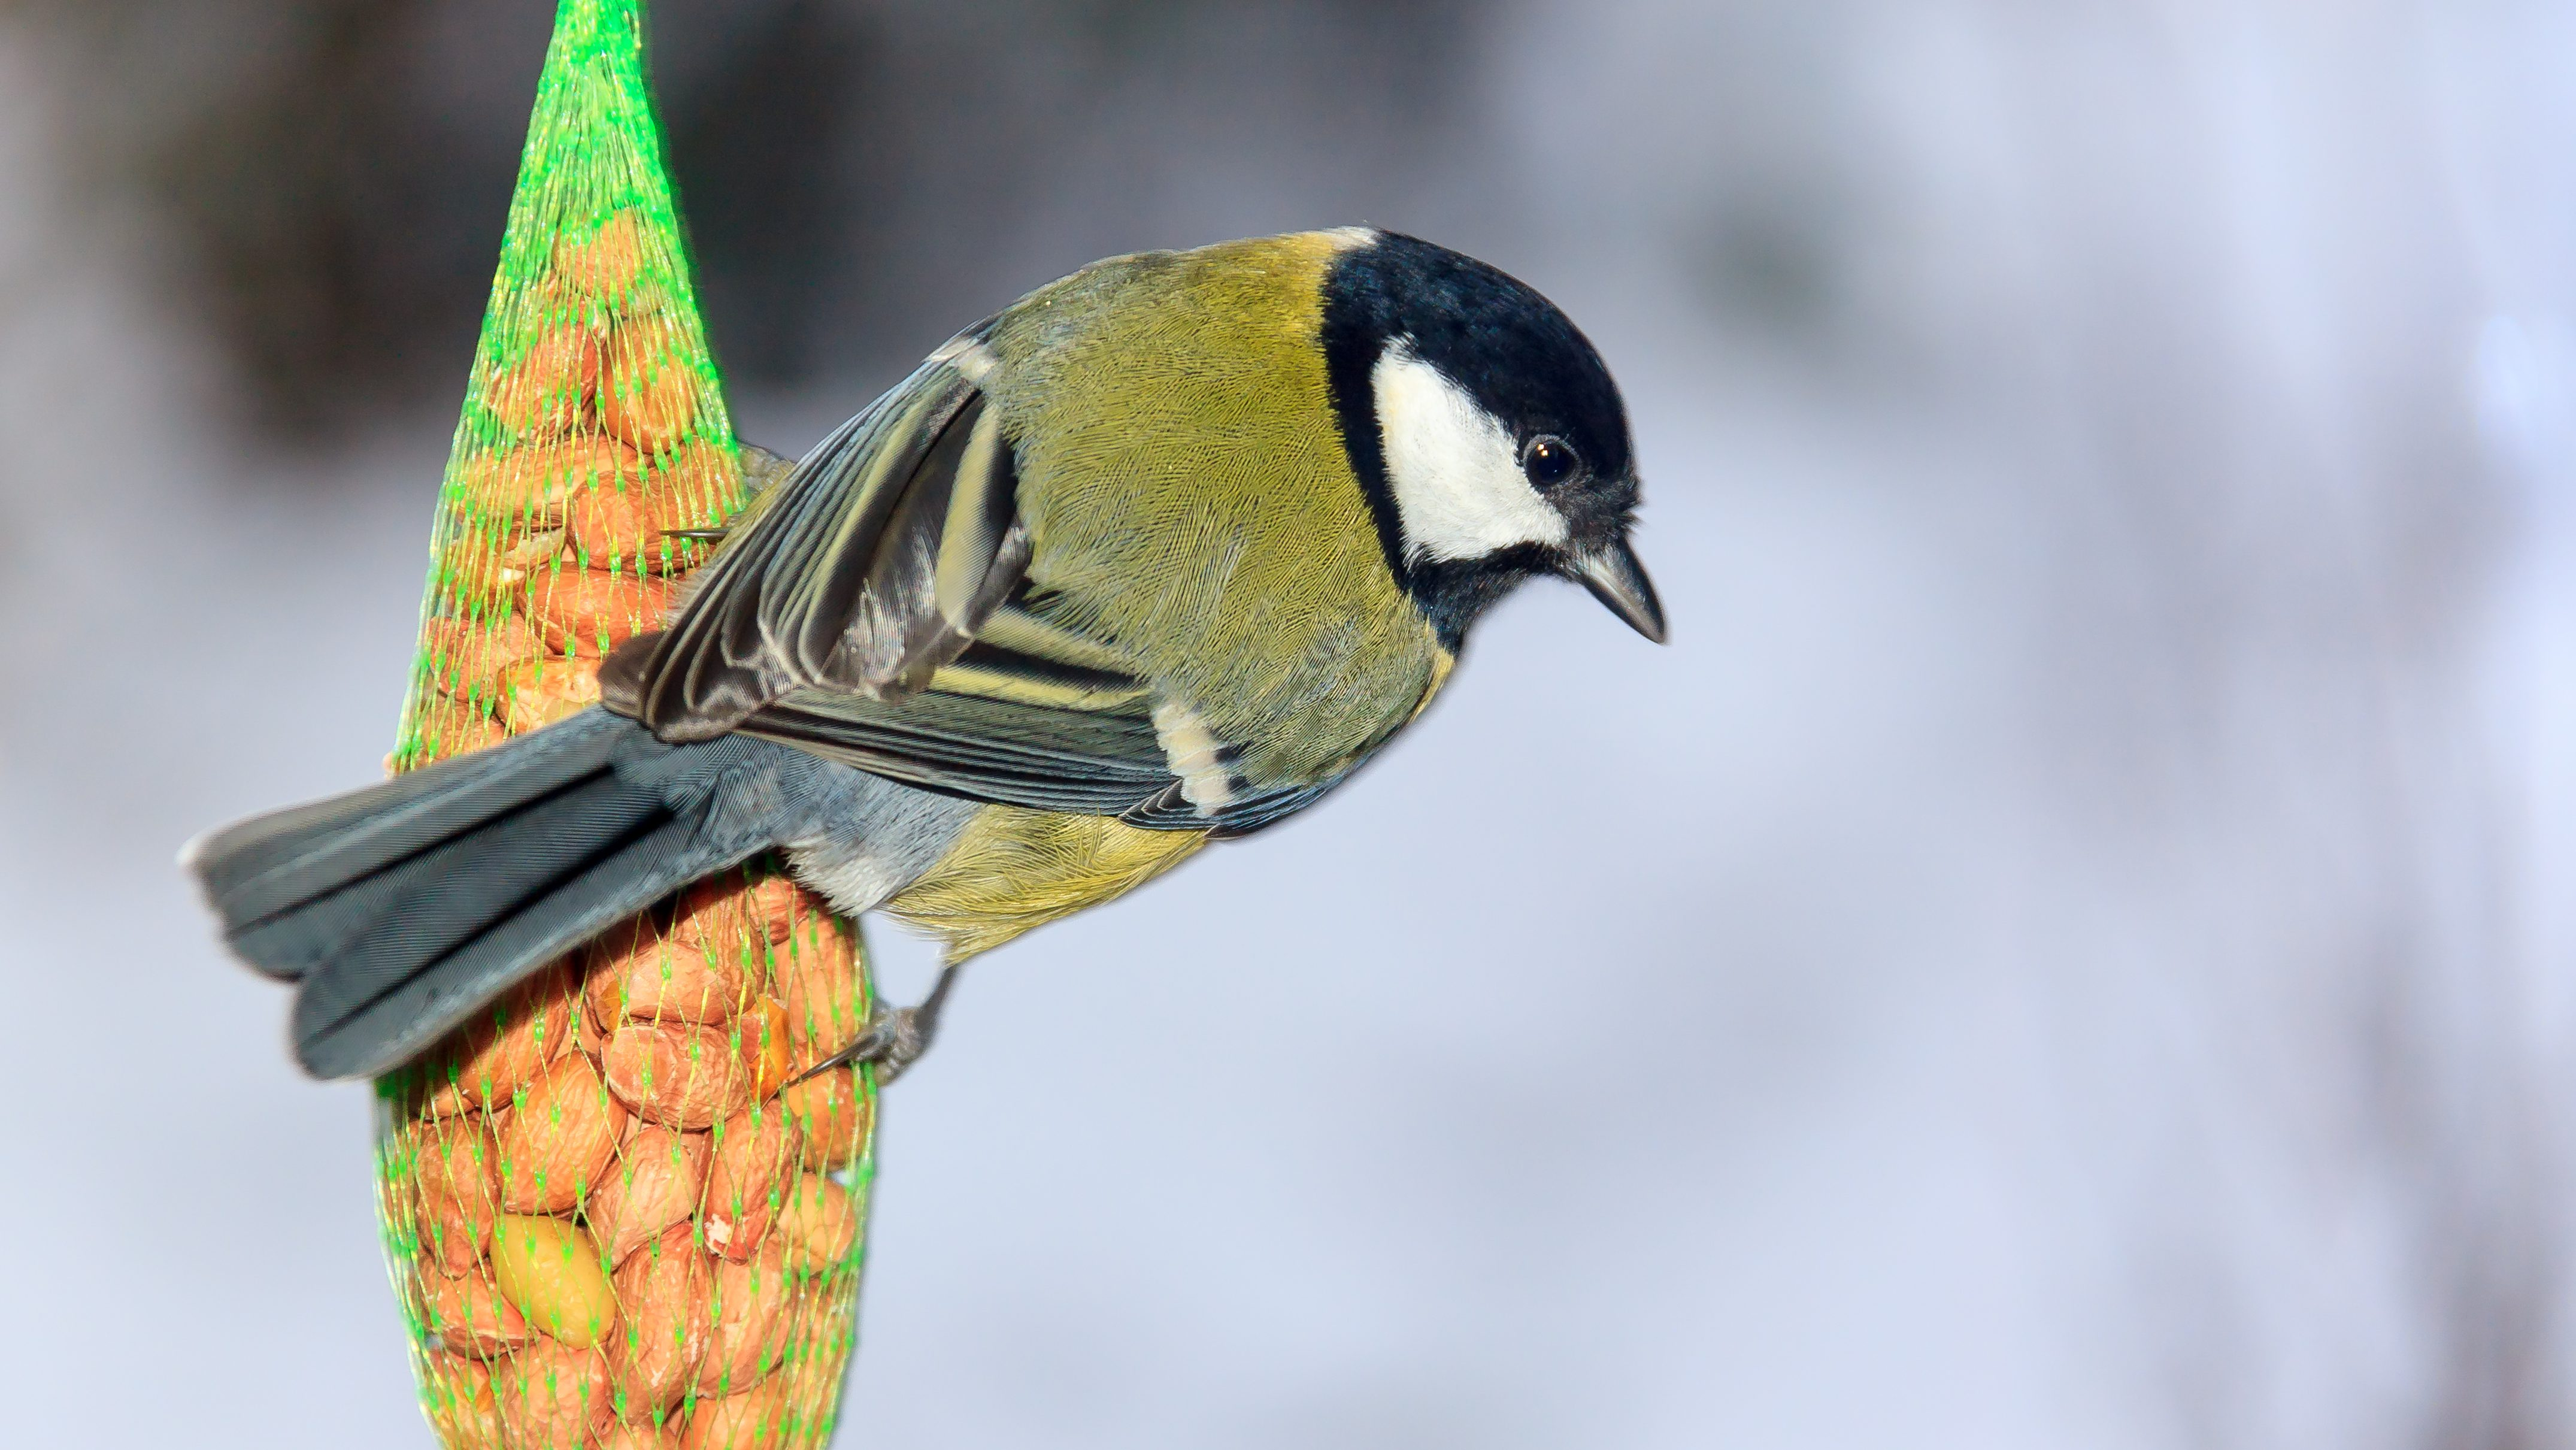 The great tit is one of the most common backyard birds in the UK.